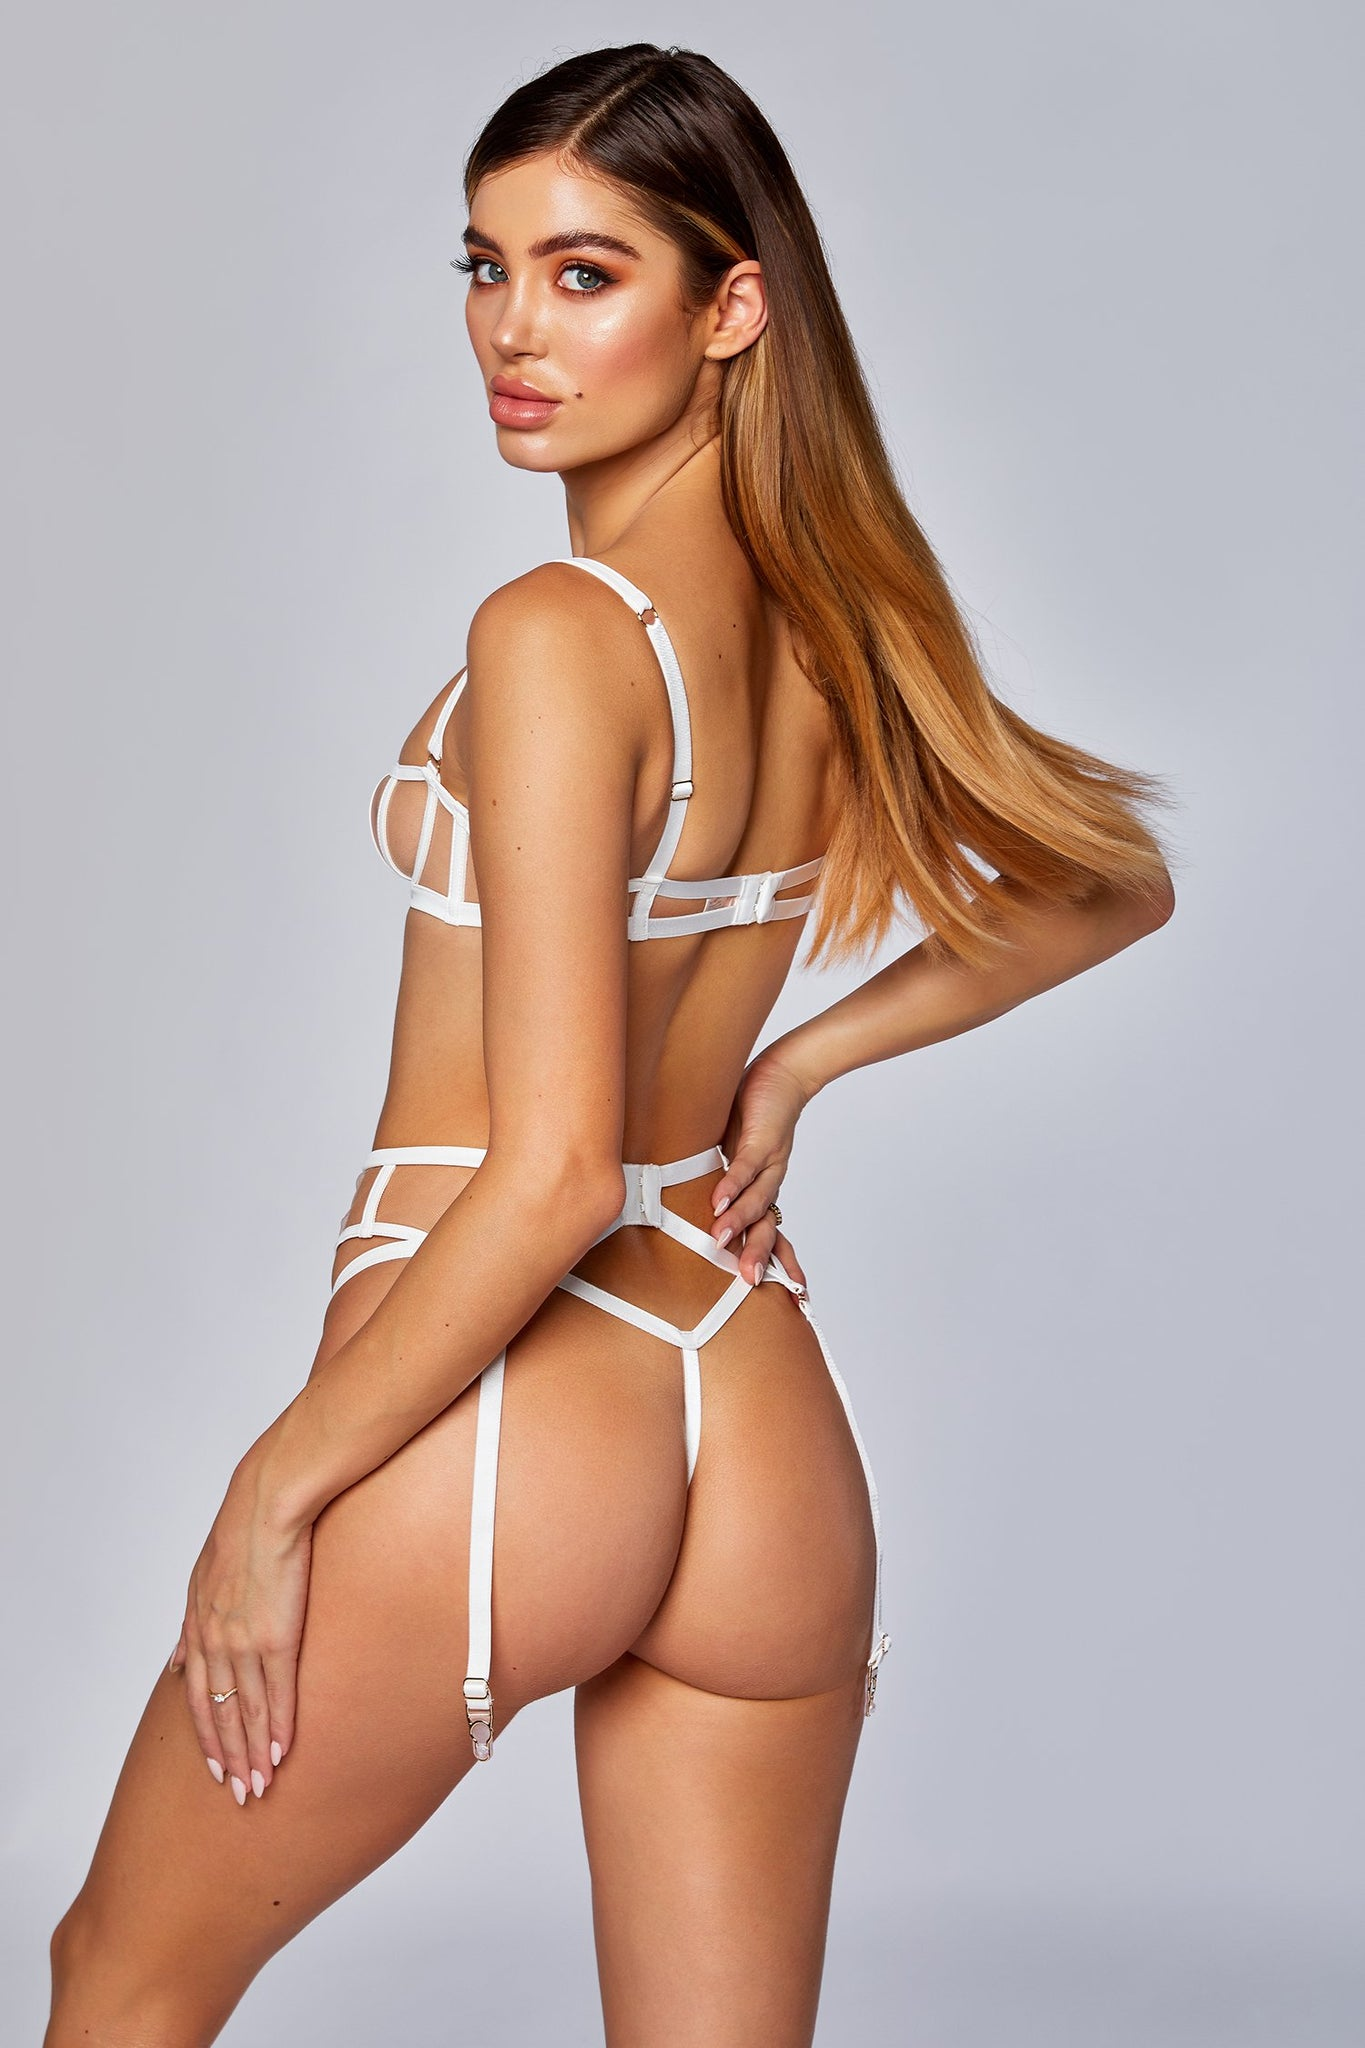 Taylor Mesh & PU Leather V-String - Ivory - MESHKI